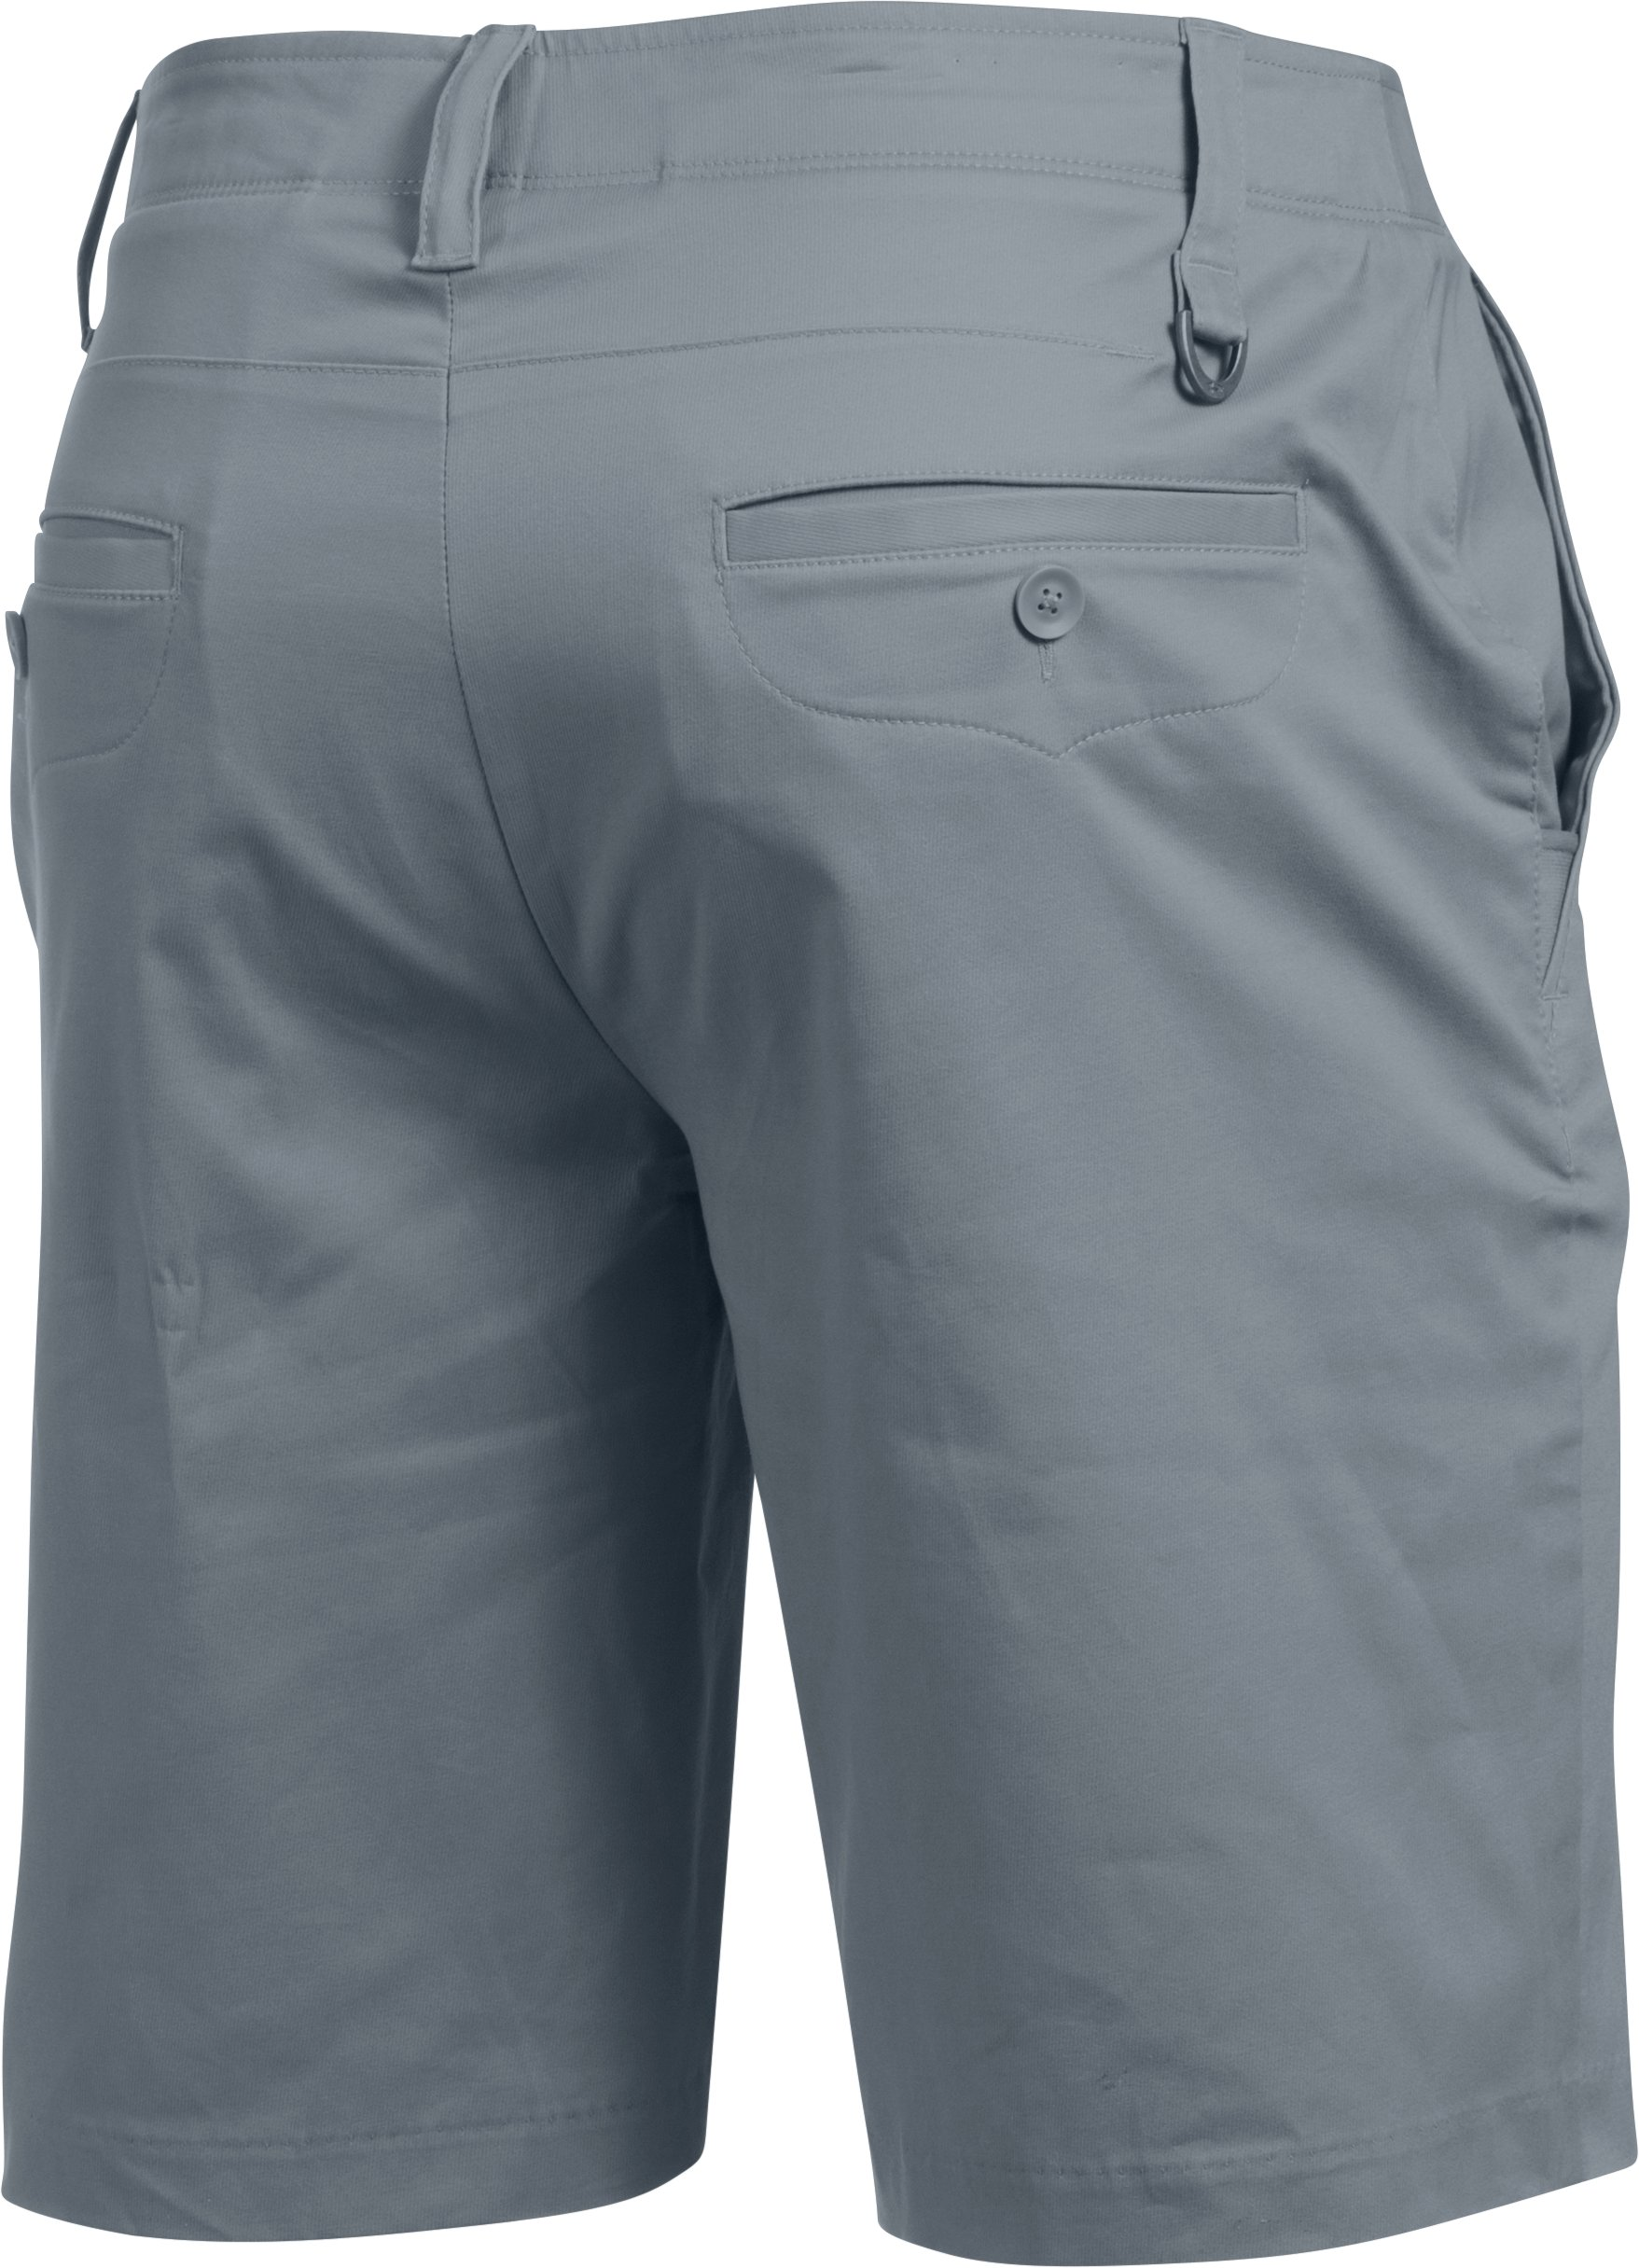 Men's UA Performance Chino Shorts, Steel